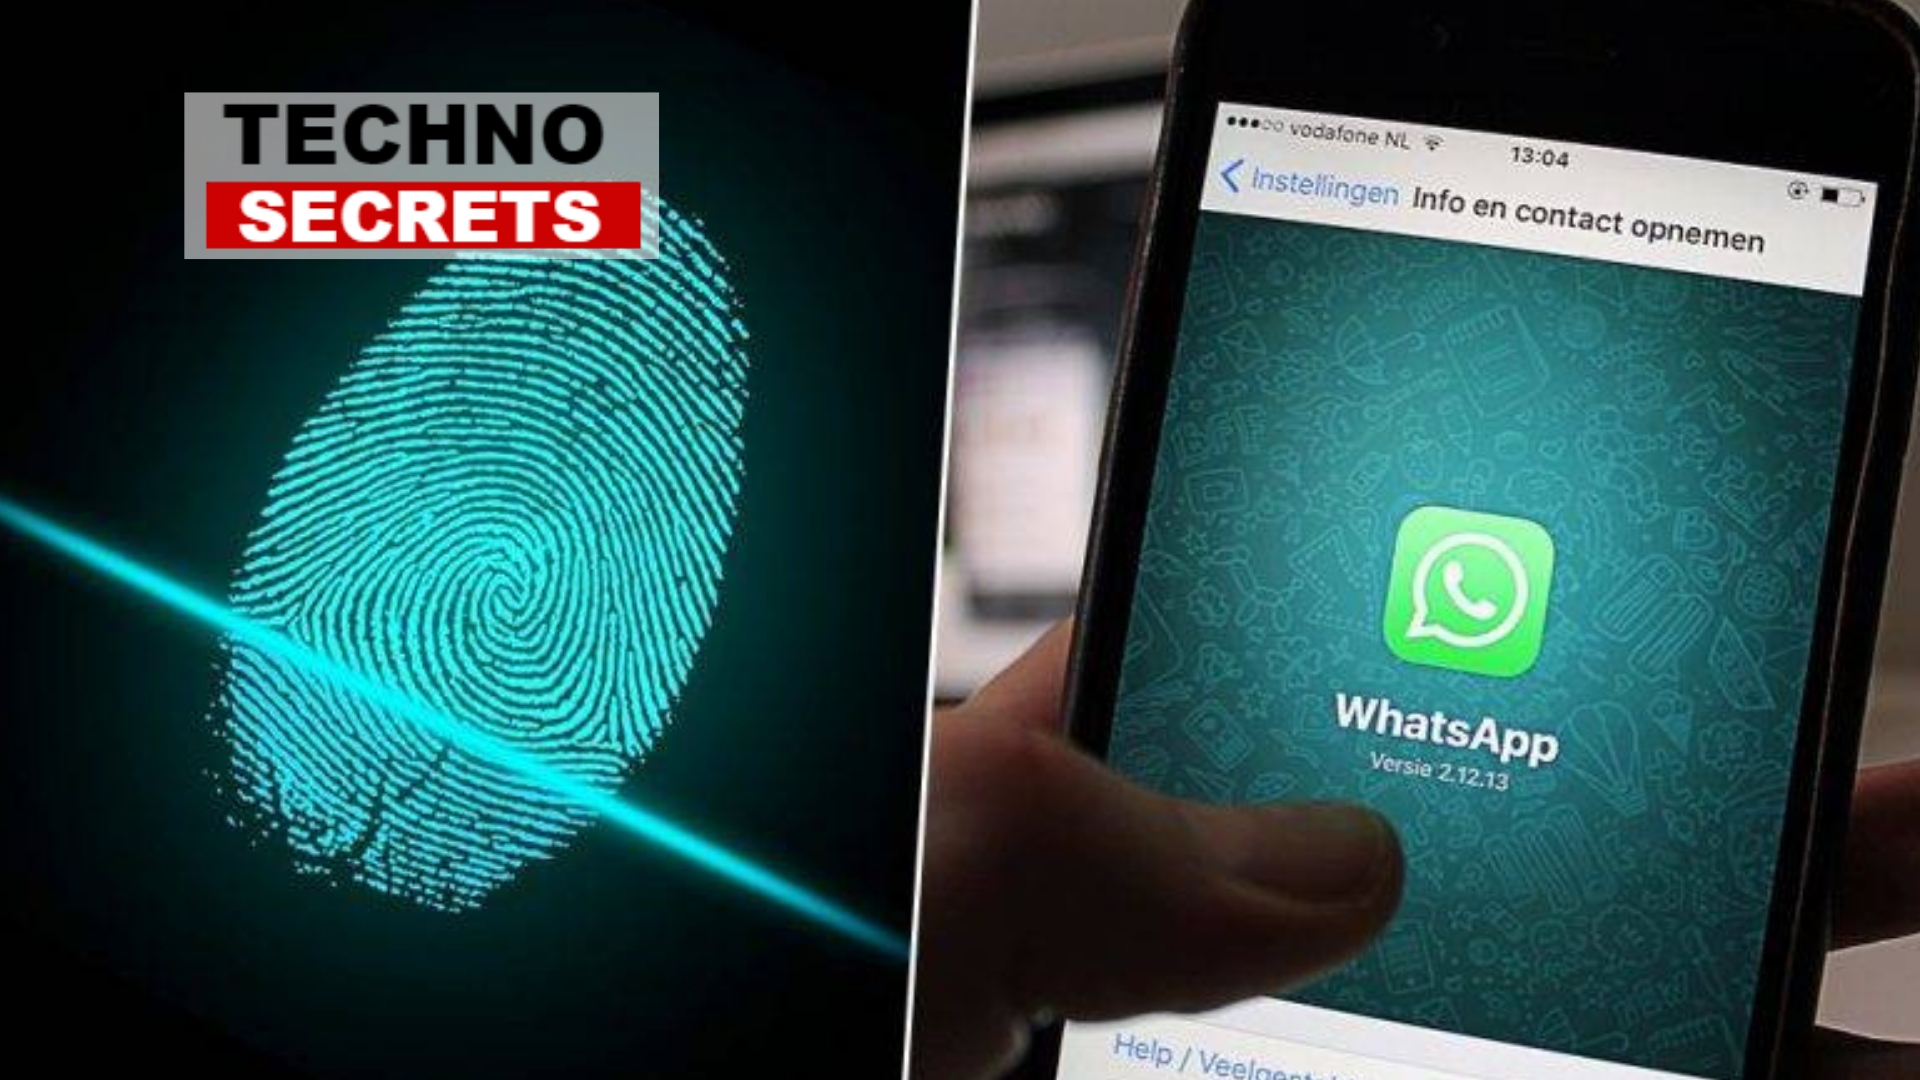 Whatsapp New Version: Fingerprint Authentication, Audio Preview System And Much More